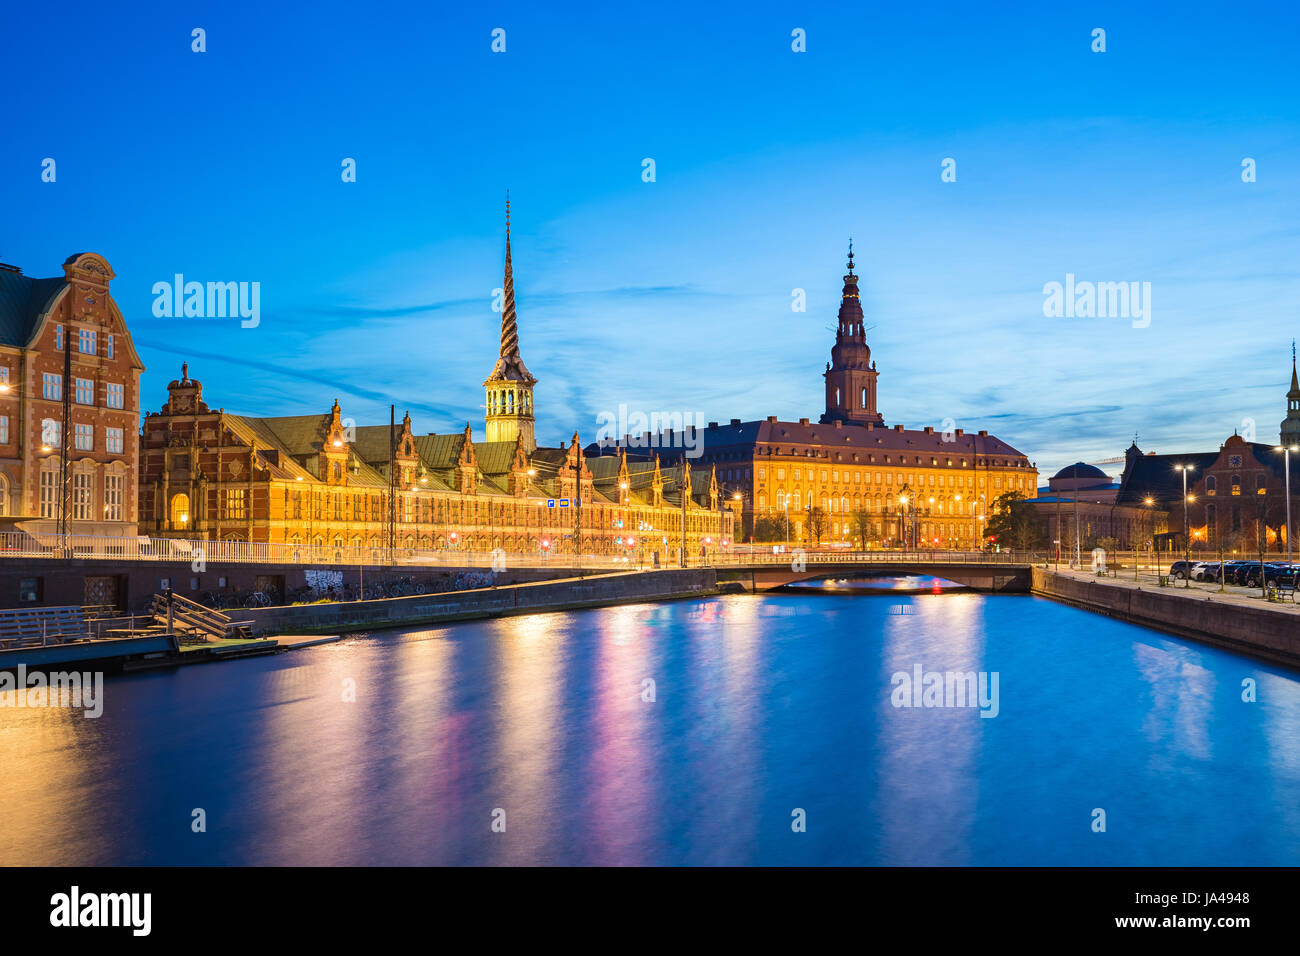 Christiansborg Palace at night in Copenhagen city, Denmark. Stock Photo